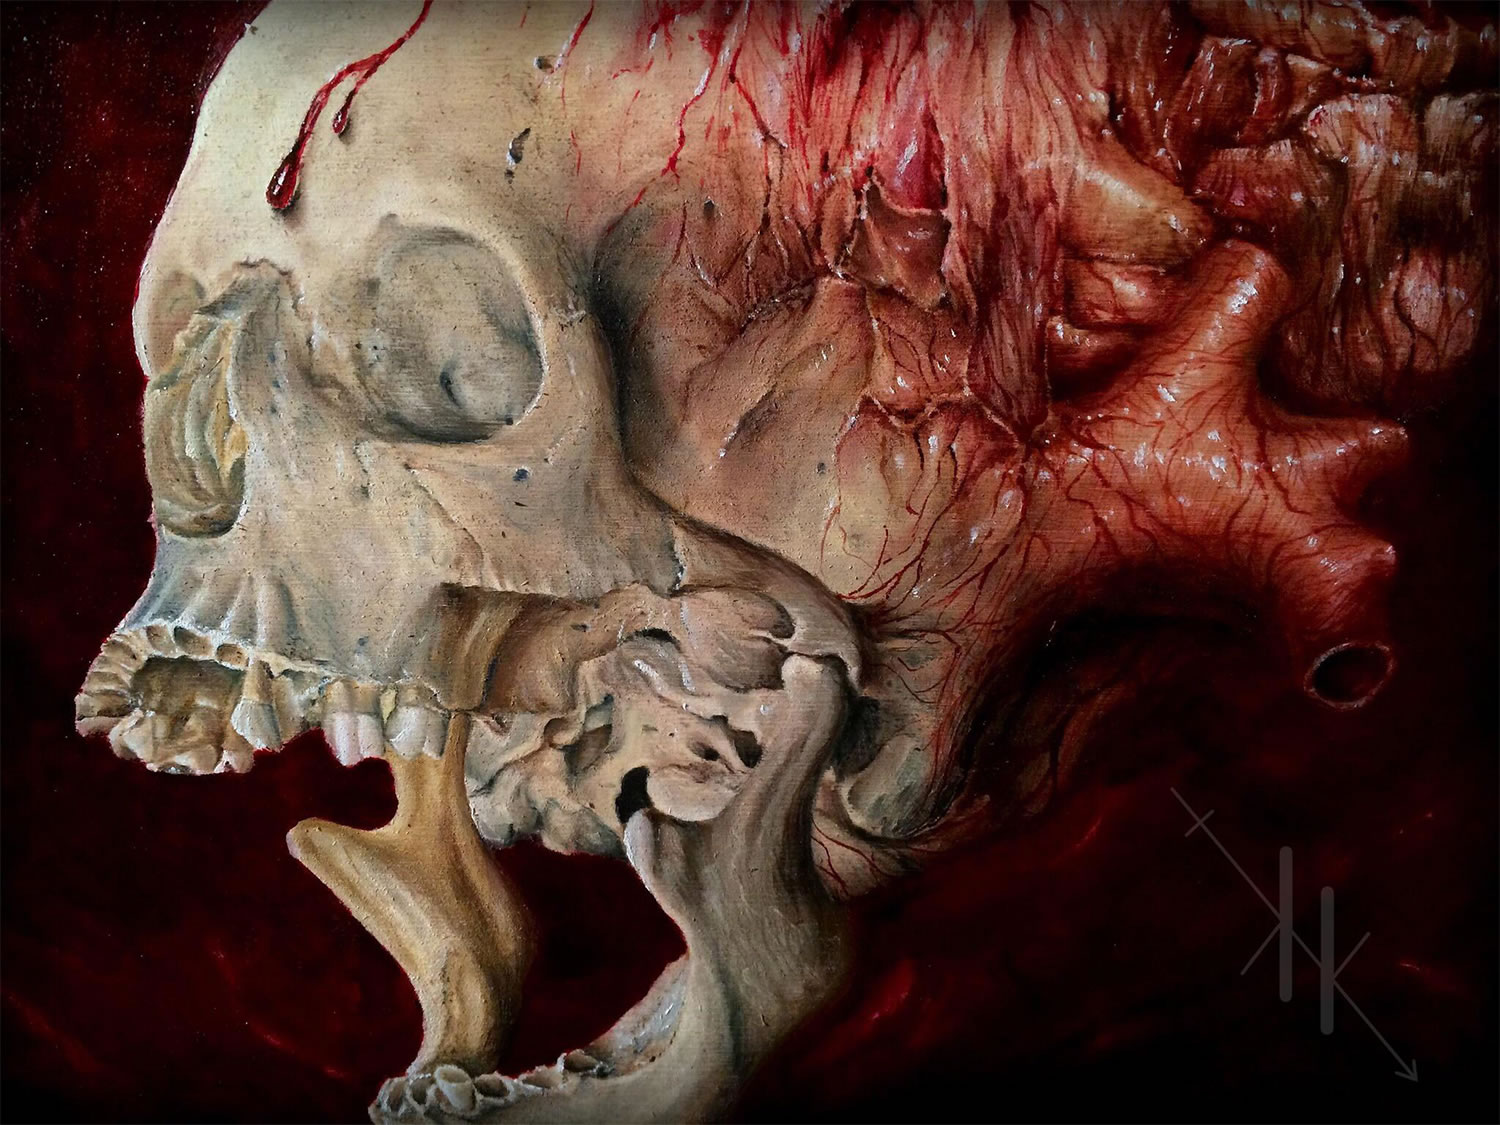 skull with blood and brains by kit king